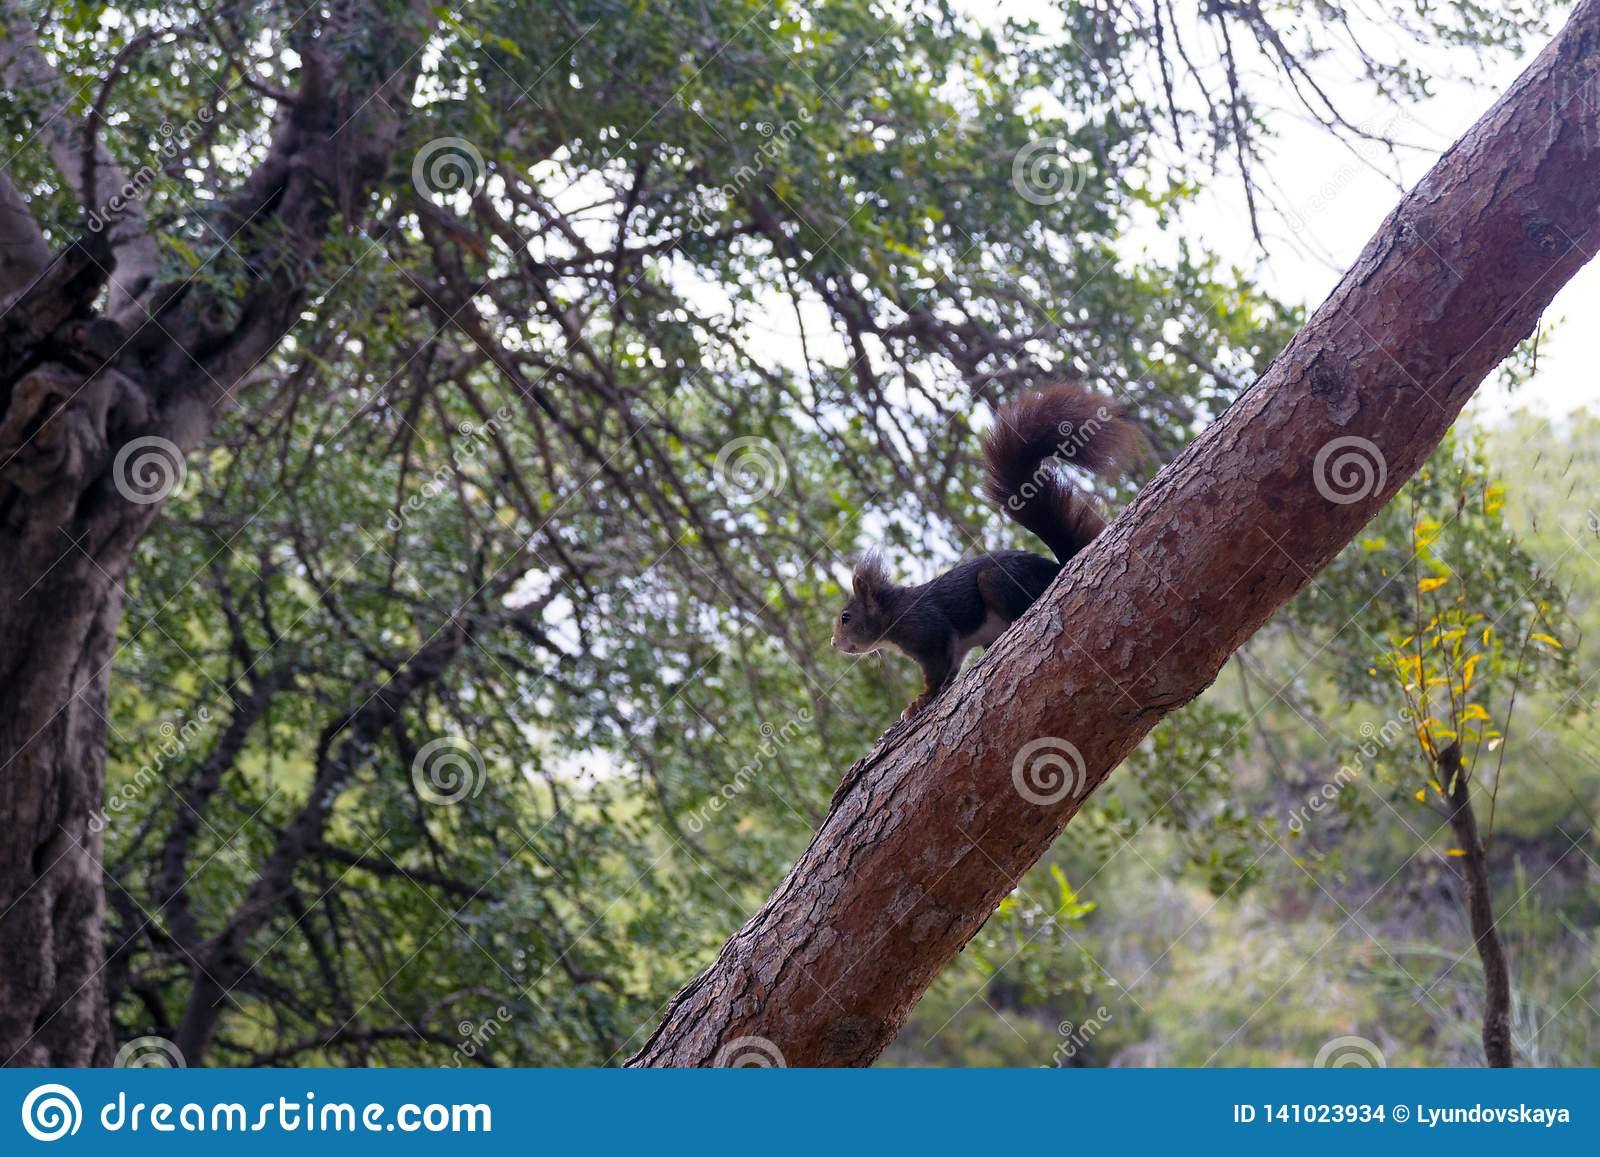 A dark brown furry squirrel sits on a large pine tree in a park.